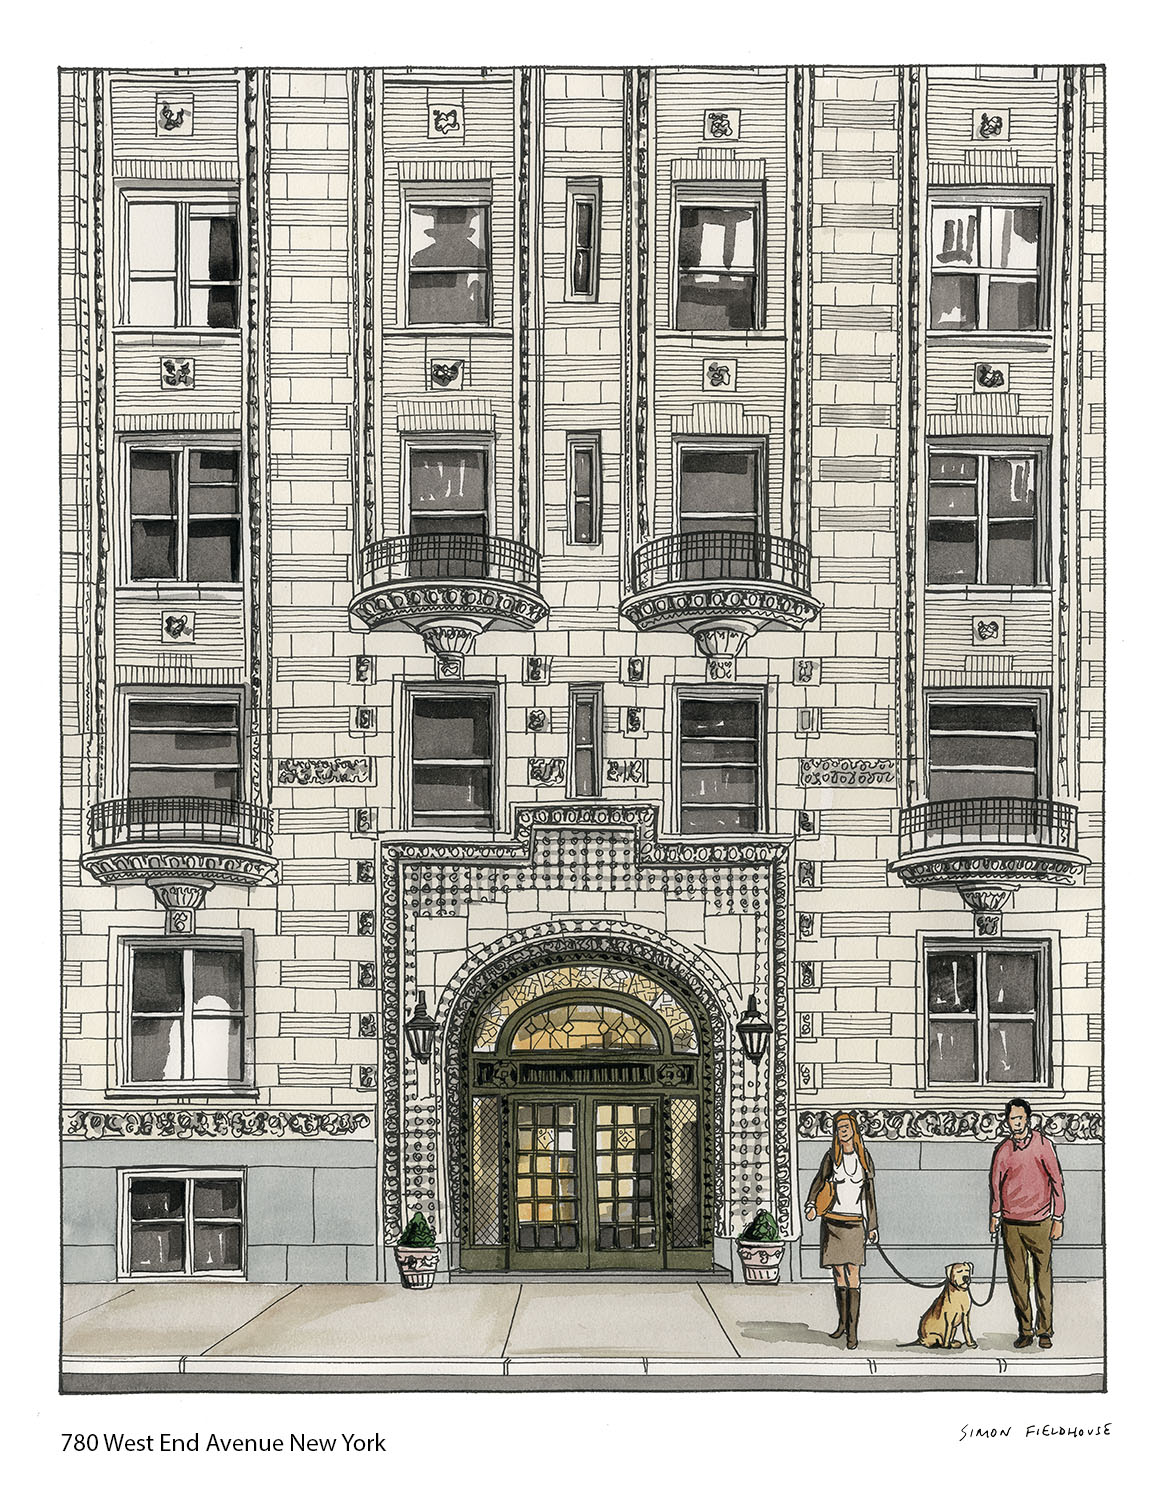 Brick Apartment Building Illustration. 780 West End Ave New York Avenue  Simon Fieldhouse